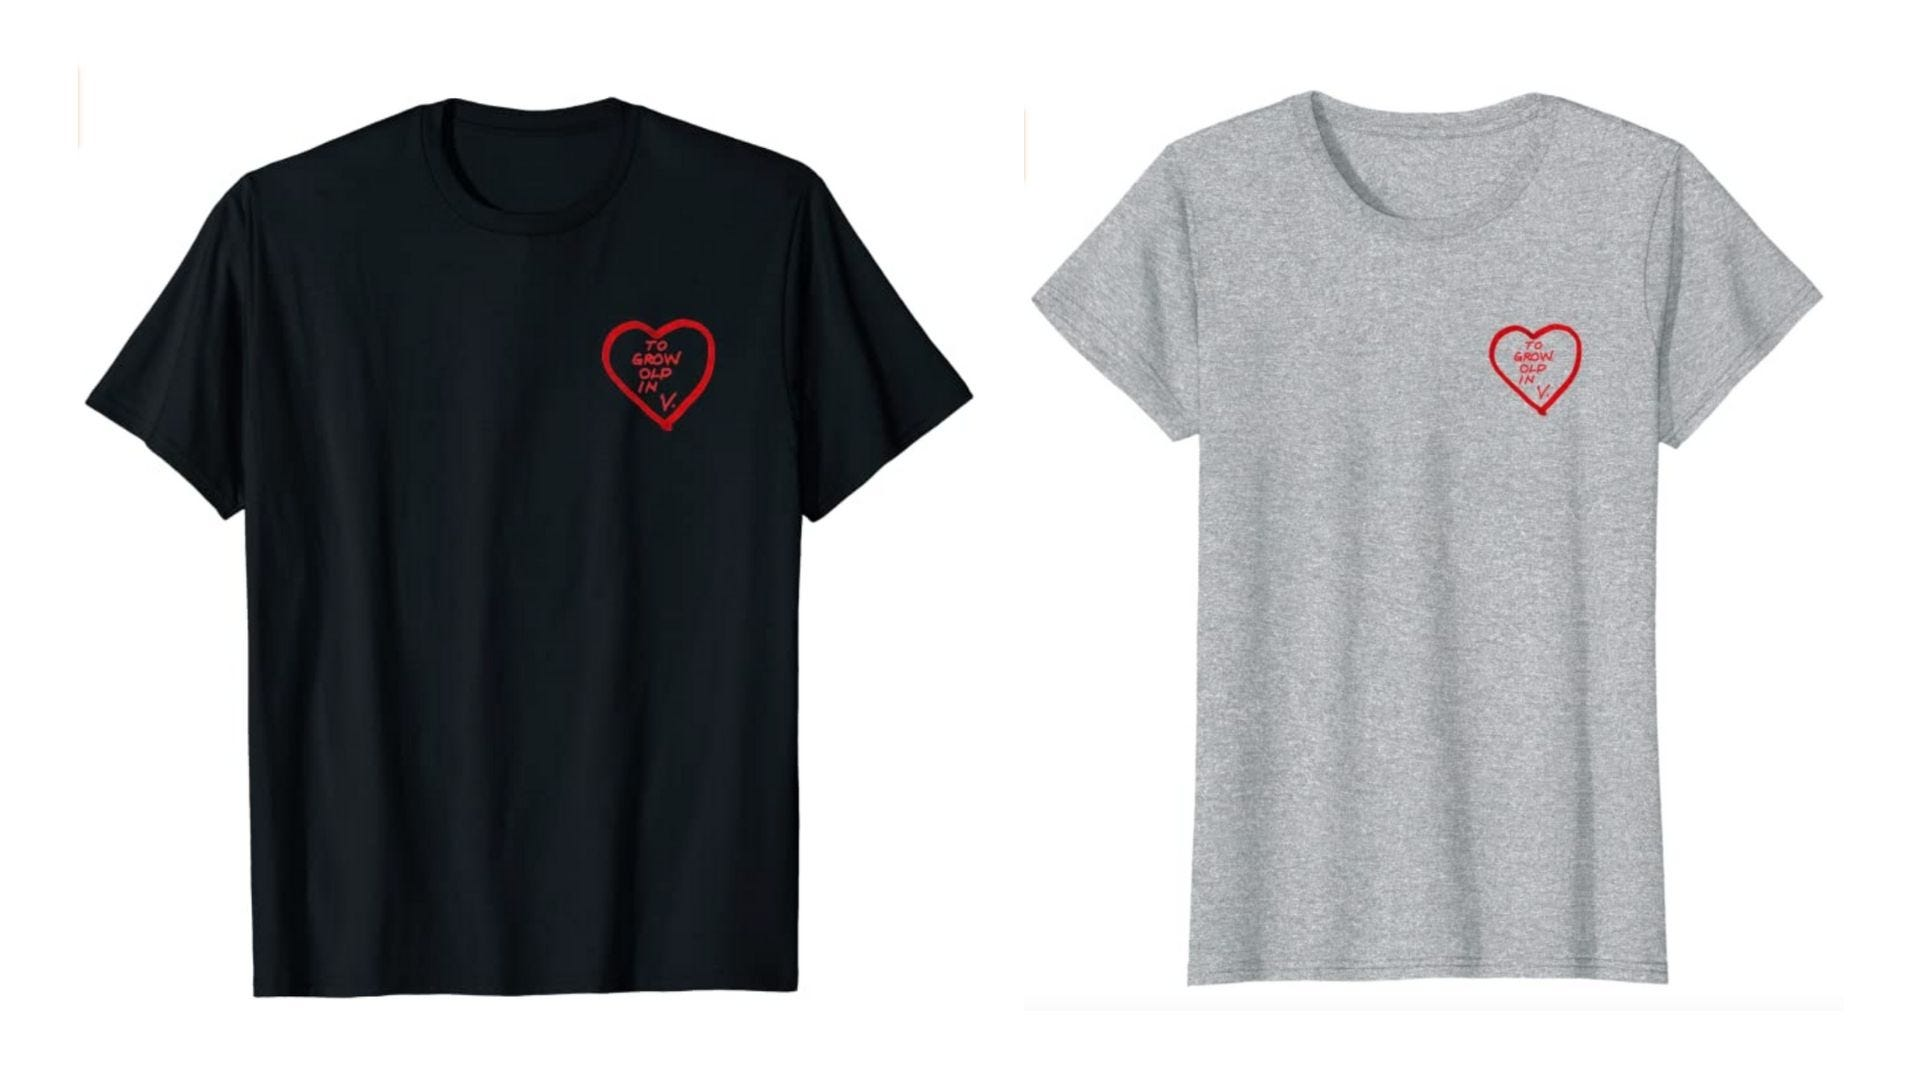 Black and gray shirts with a small heart on the upper righthand corner